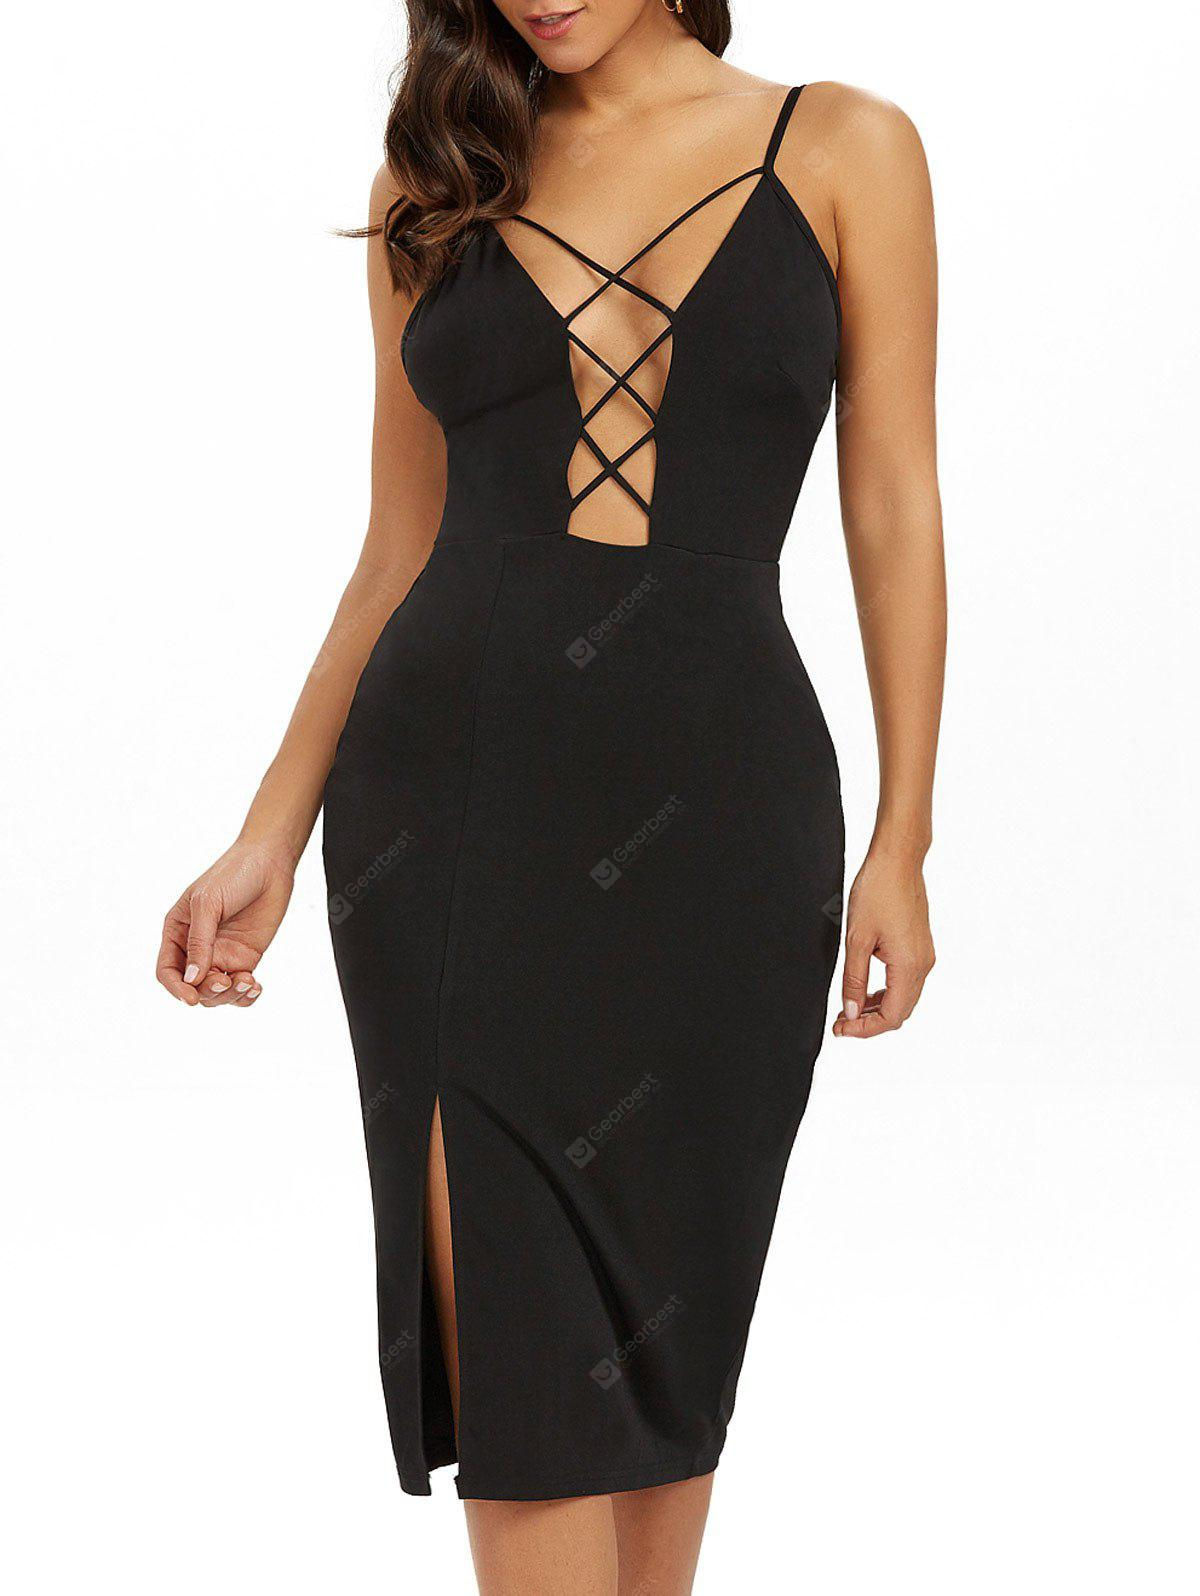 BLACK XS Low Cut Strappy Backless Slip Sheath Dress